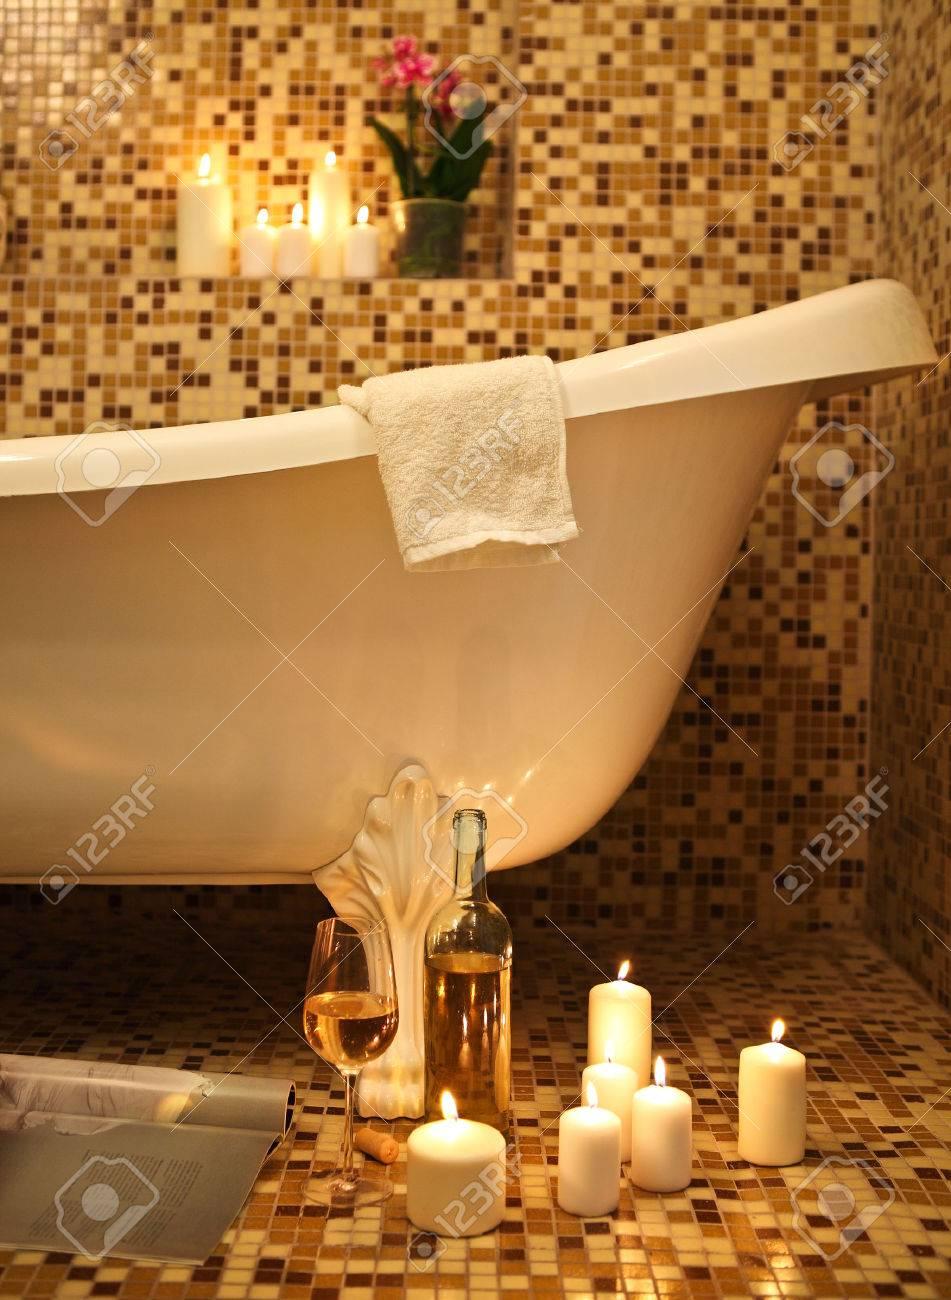 Home Bathroom Interior With Bubble Bath Candles Magazine And White Whine Relax Concept